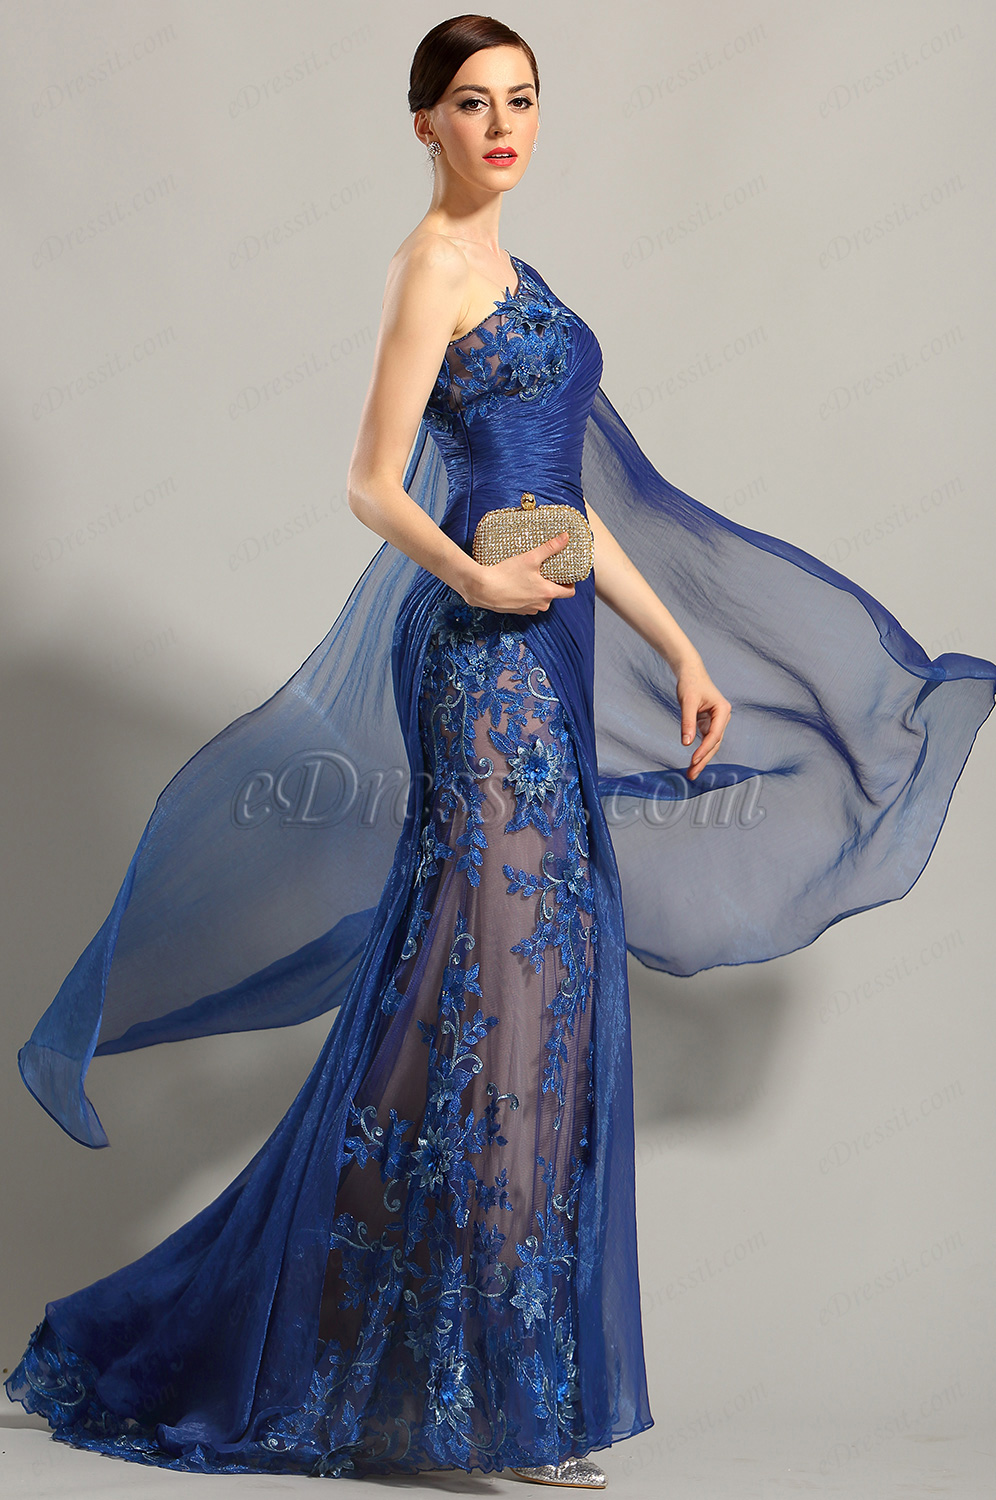 eDressit One Shoulder Embroidered Blue Evening Gown Prom Dress ...